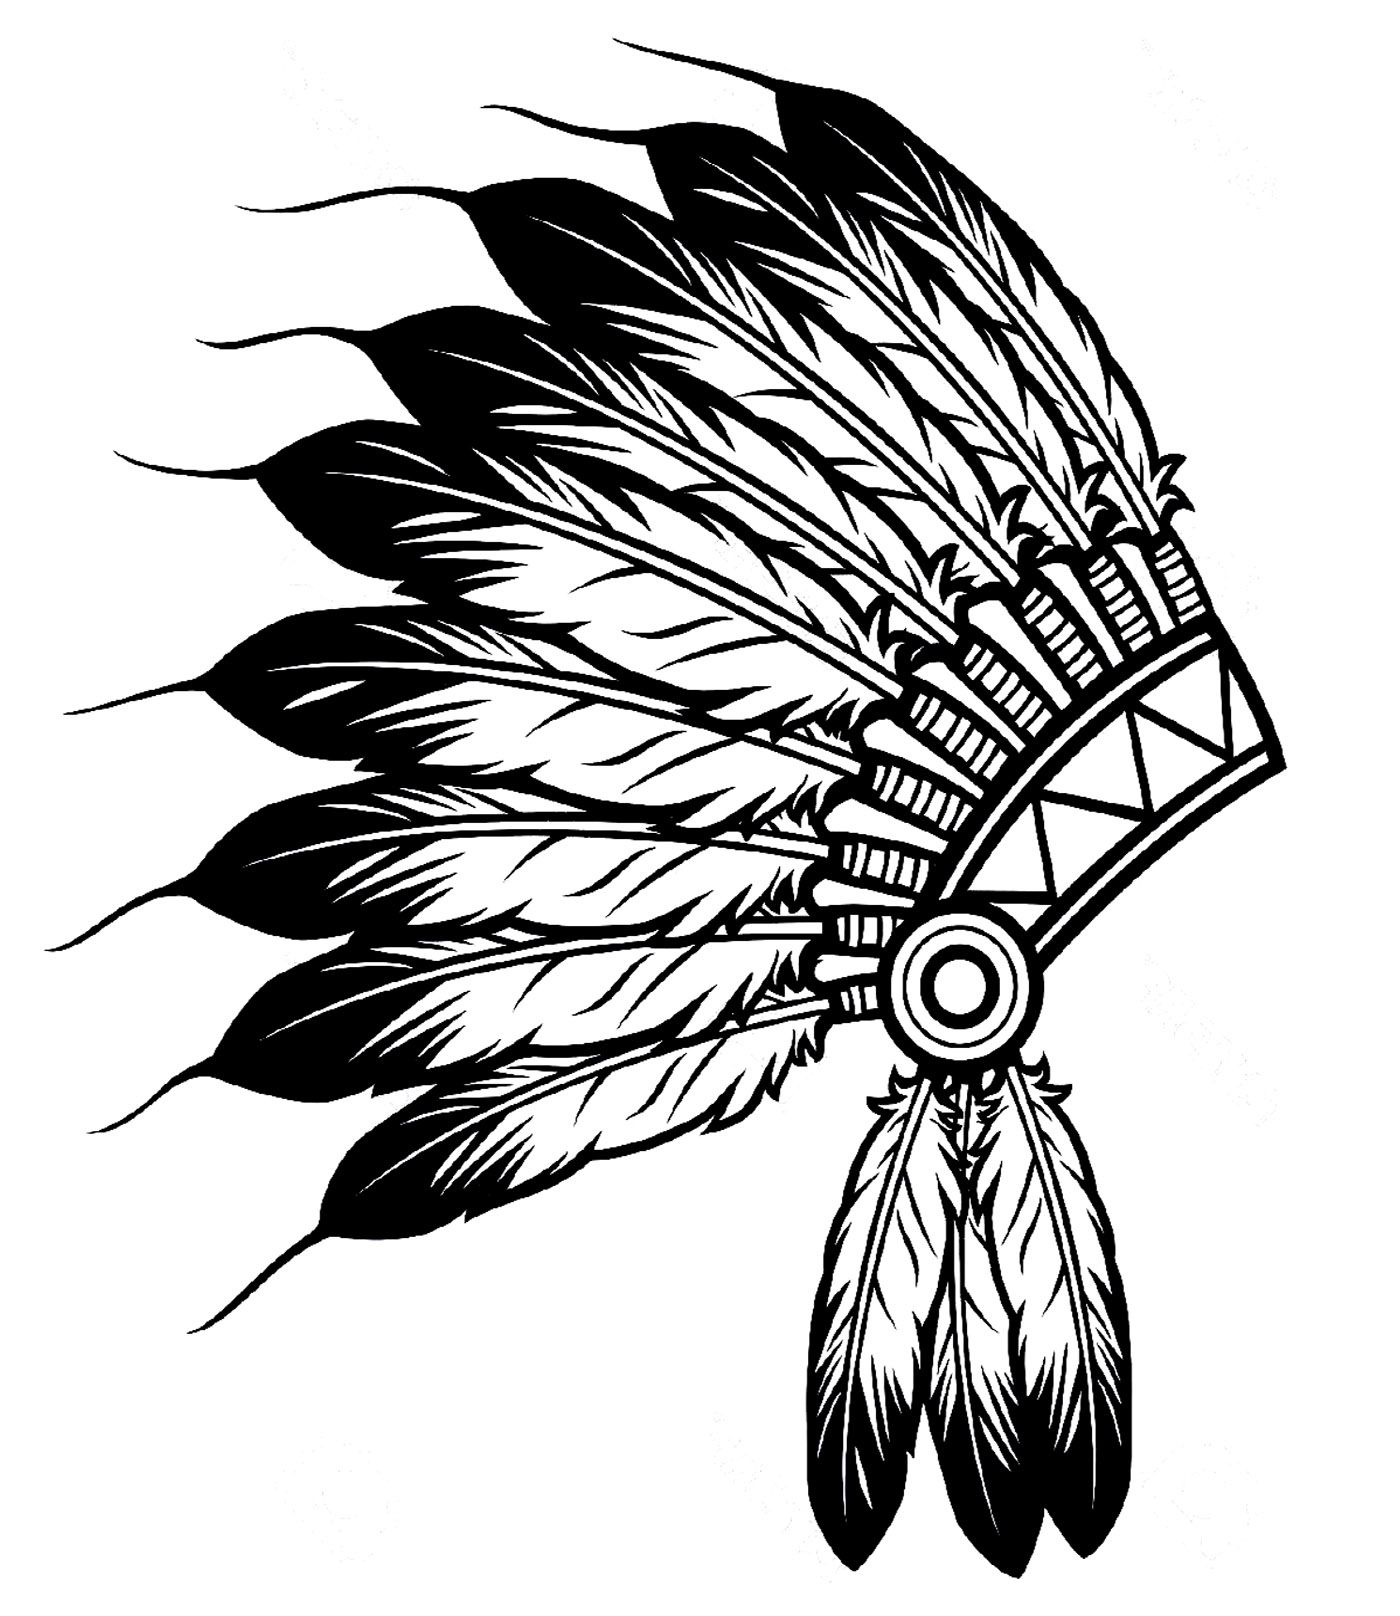 Free coloring pages of peacock feathers coloring everyday printable - Free Coloring Page Coloring Indian Headdress The Indian Feather Hat